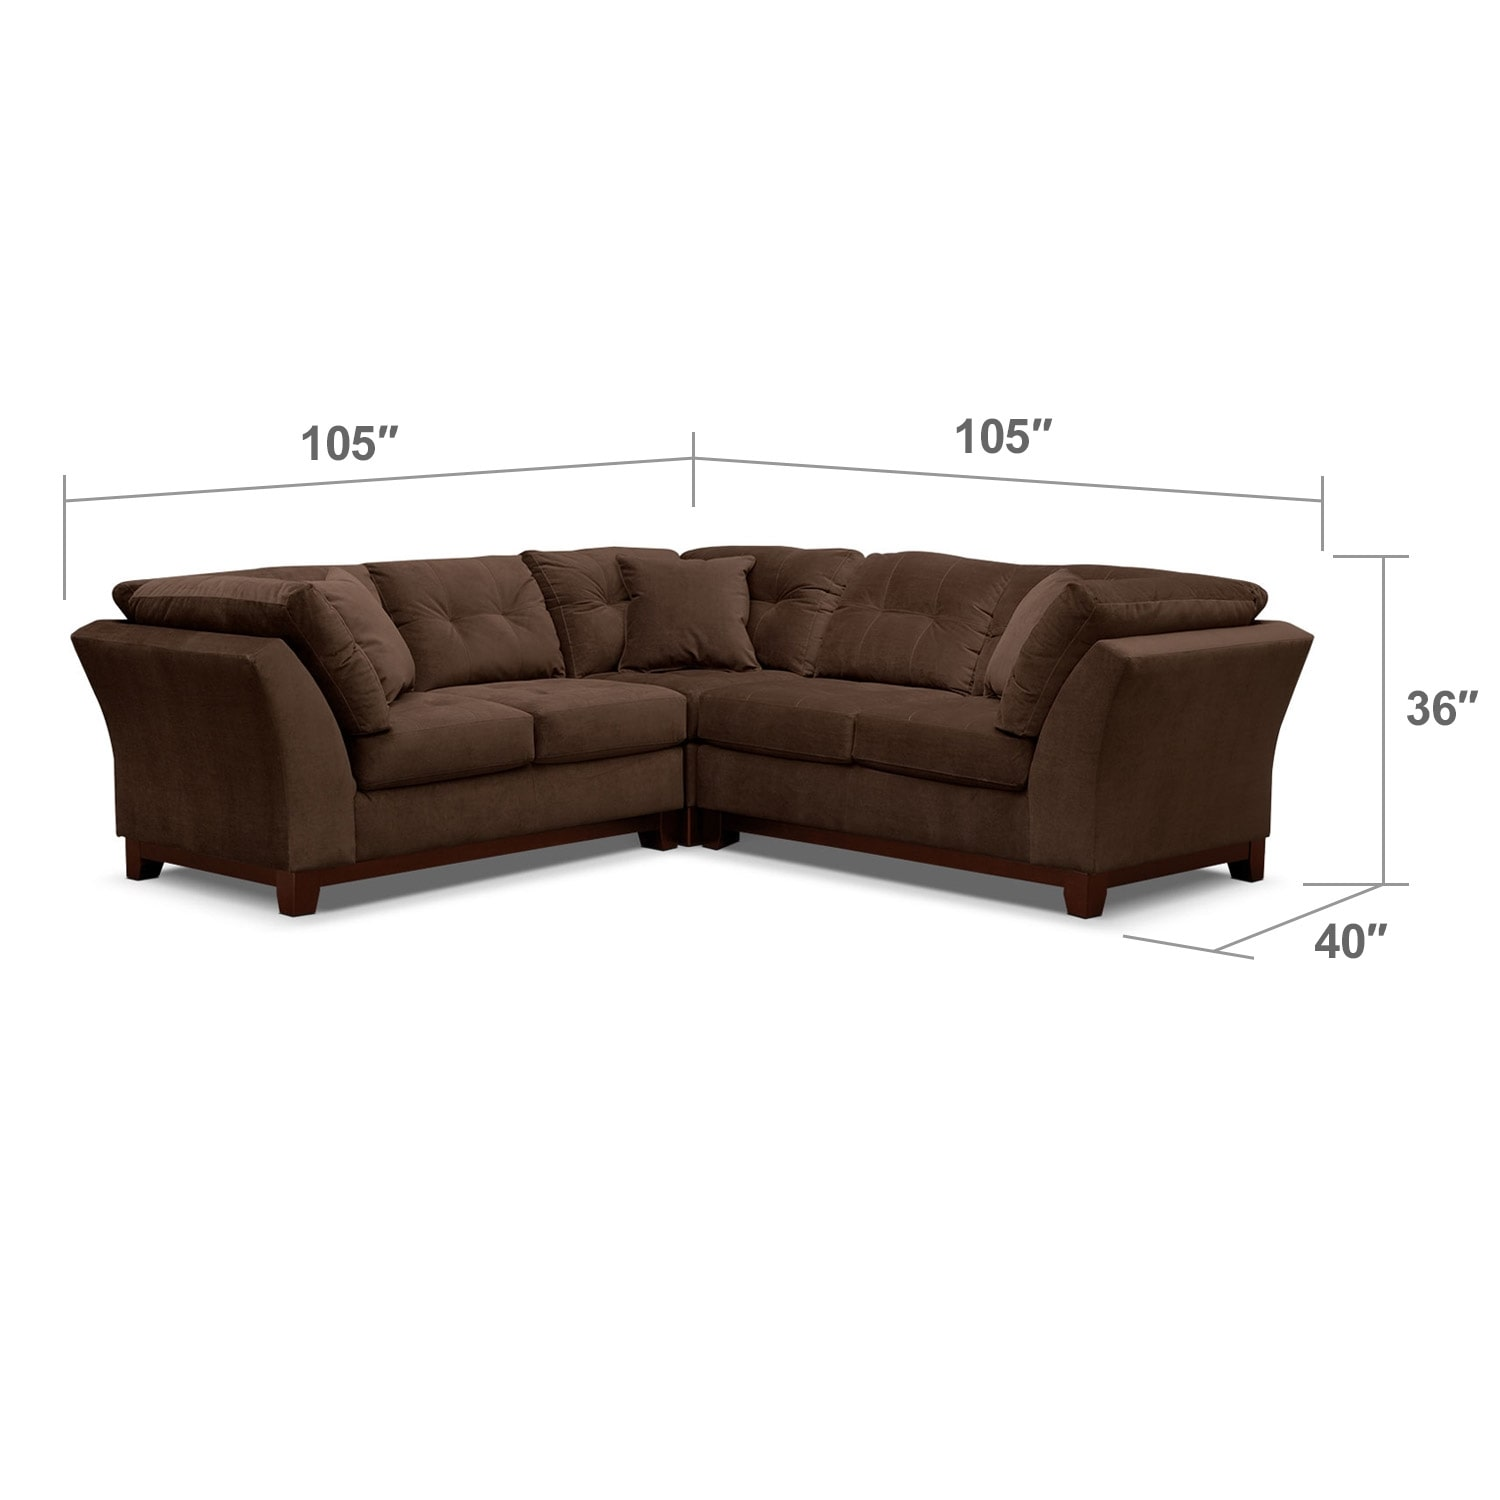 Living Room Furniture - Solace Chocolate II 3 Pc. Sectional (Alternate)